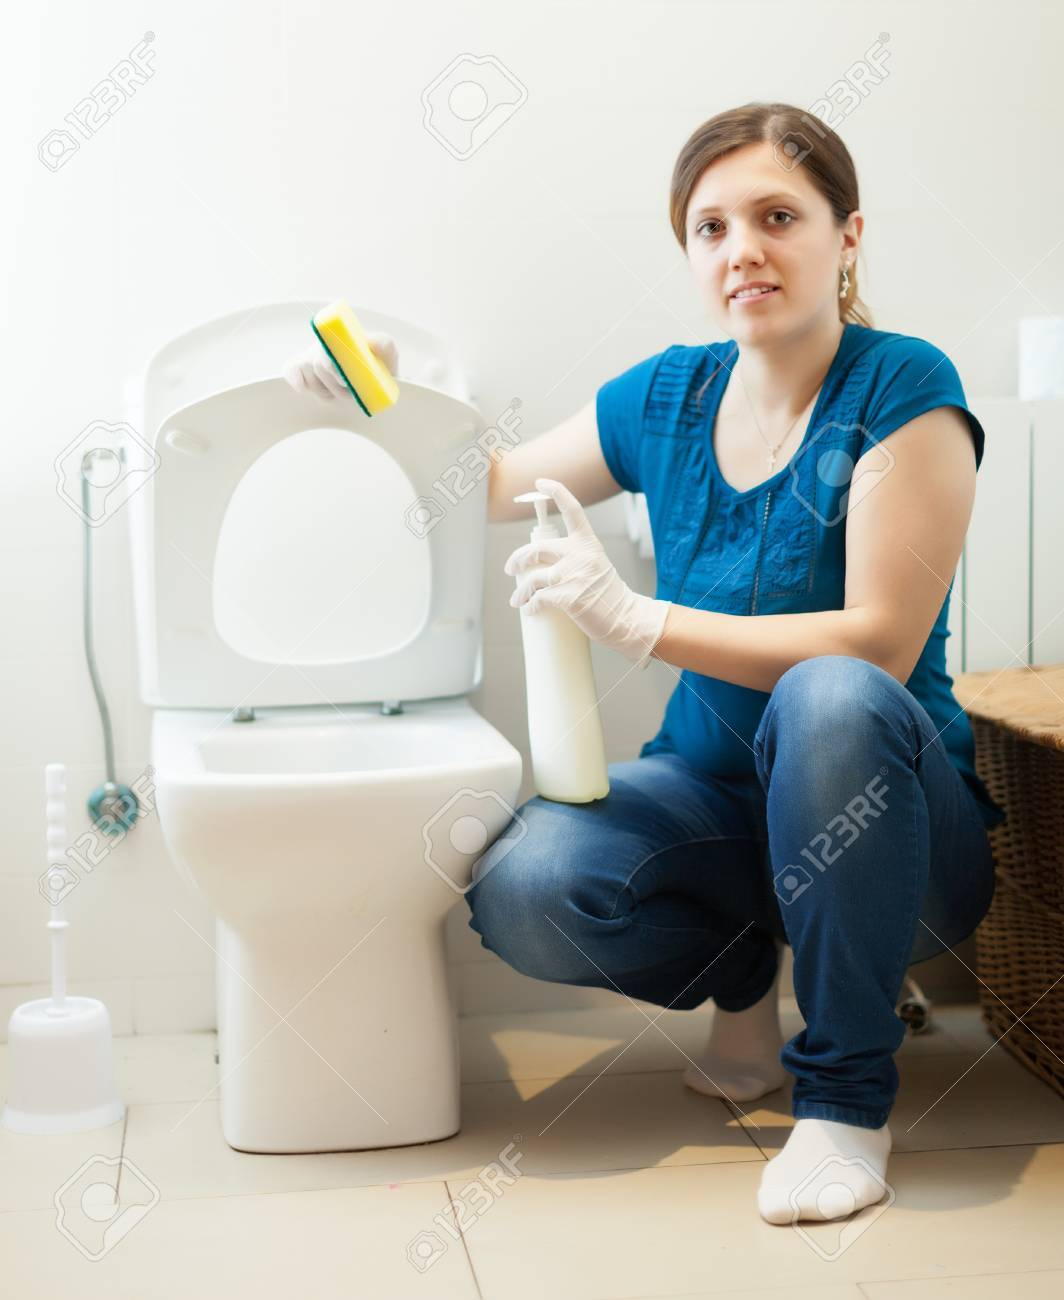 woman cleaning toilet with sponge and cleaner at  home Stock Photo - 22817637